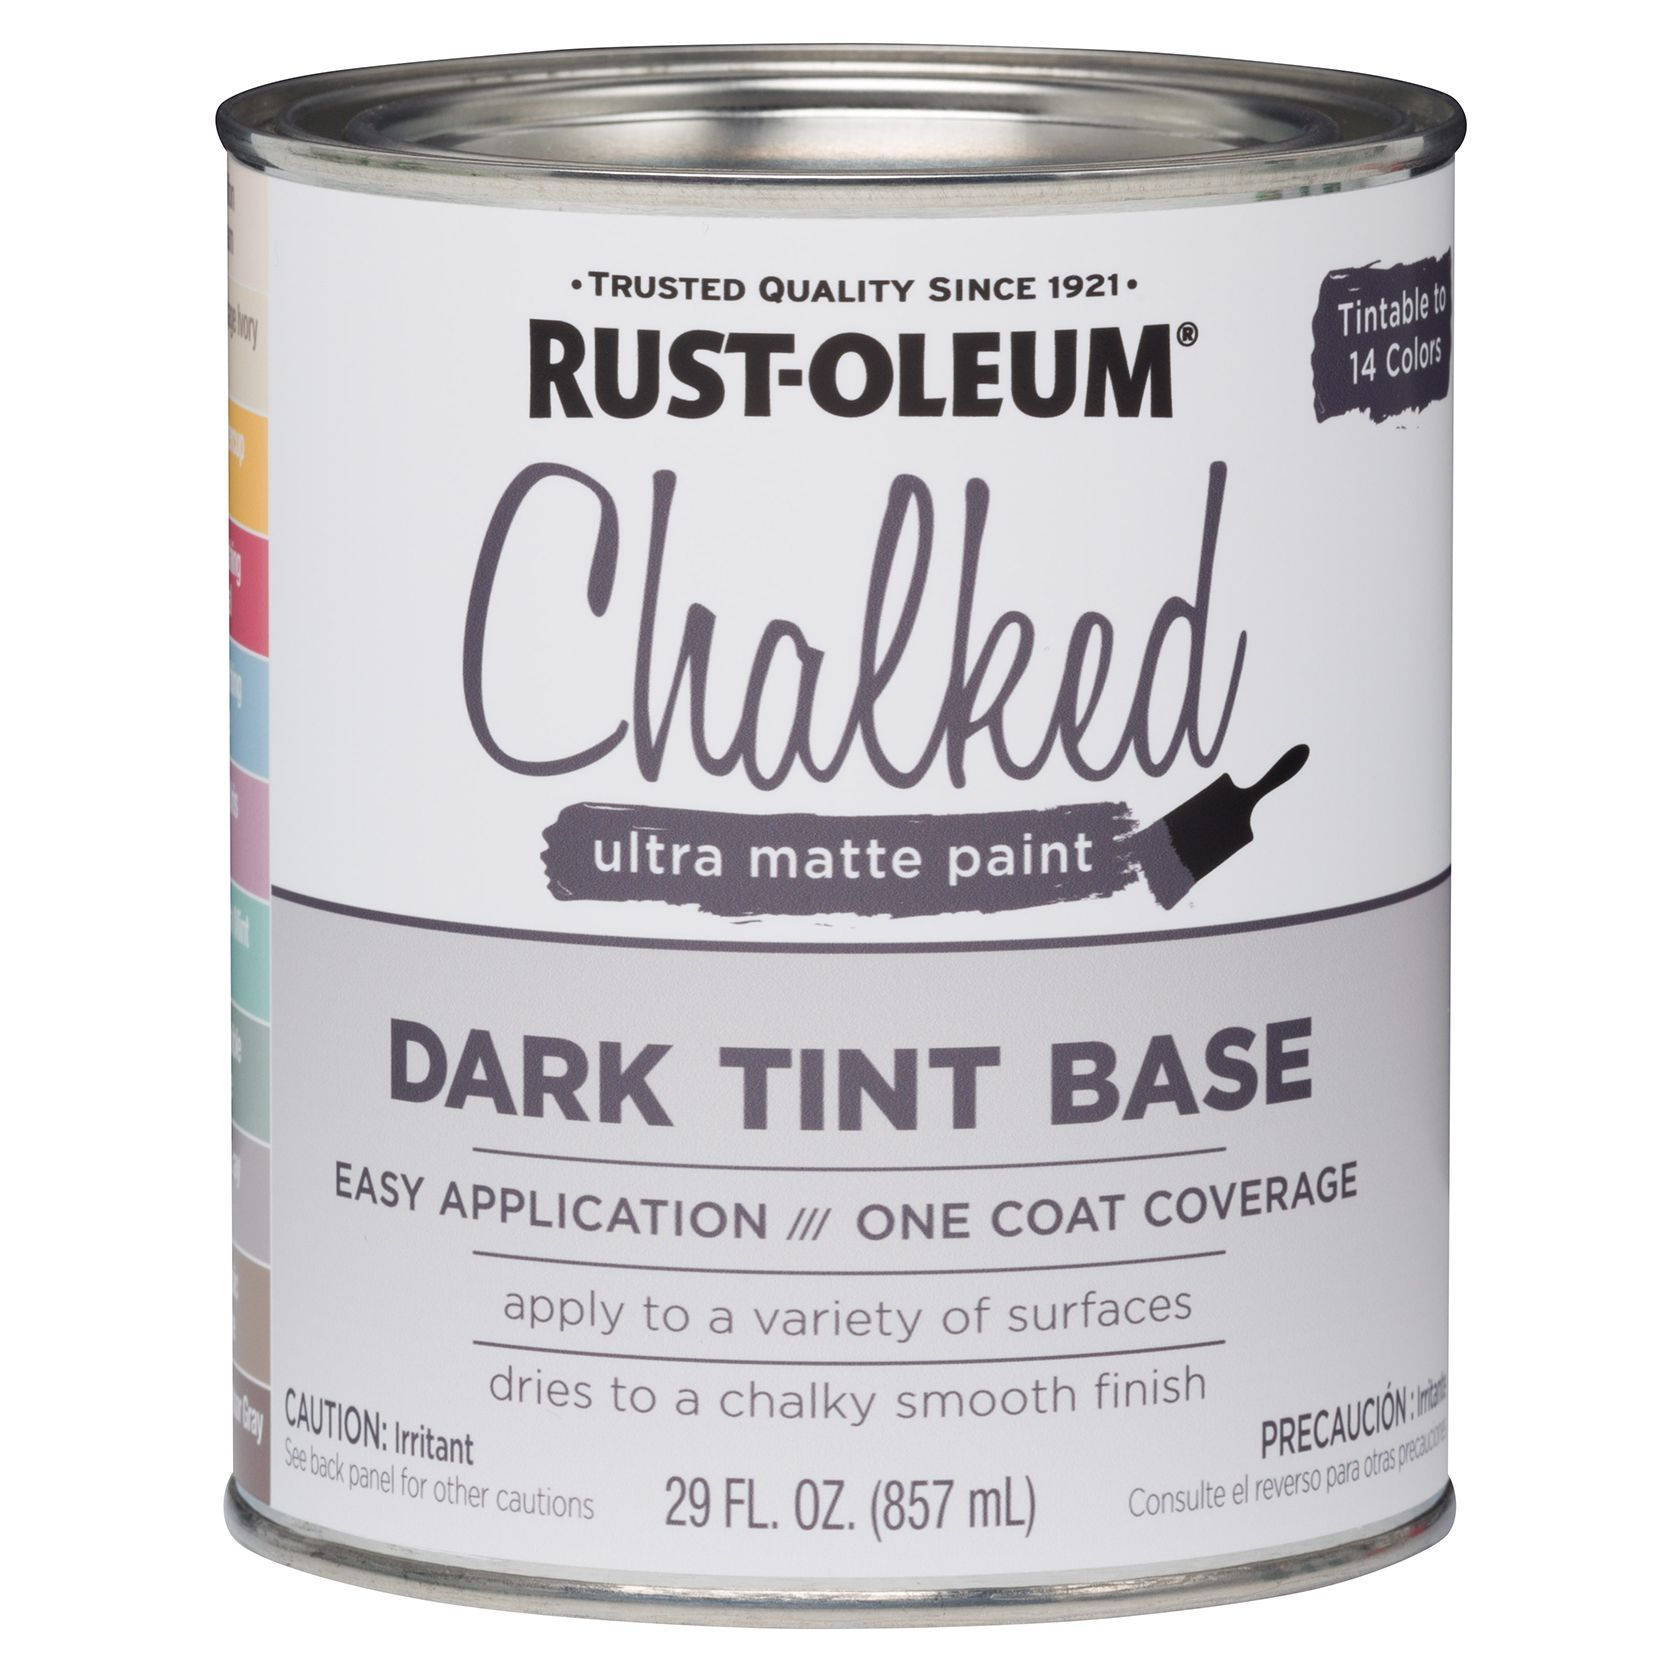 Rustoleum 287689 1 Gallon Dark Tint Base Chalked Ultra Matte